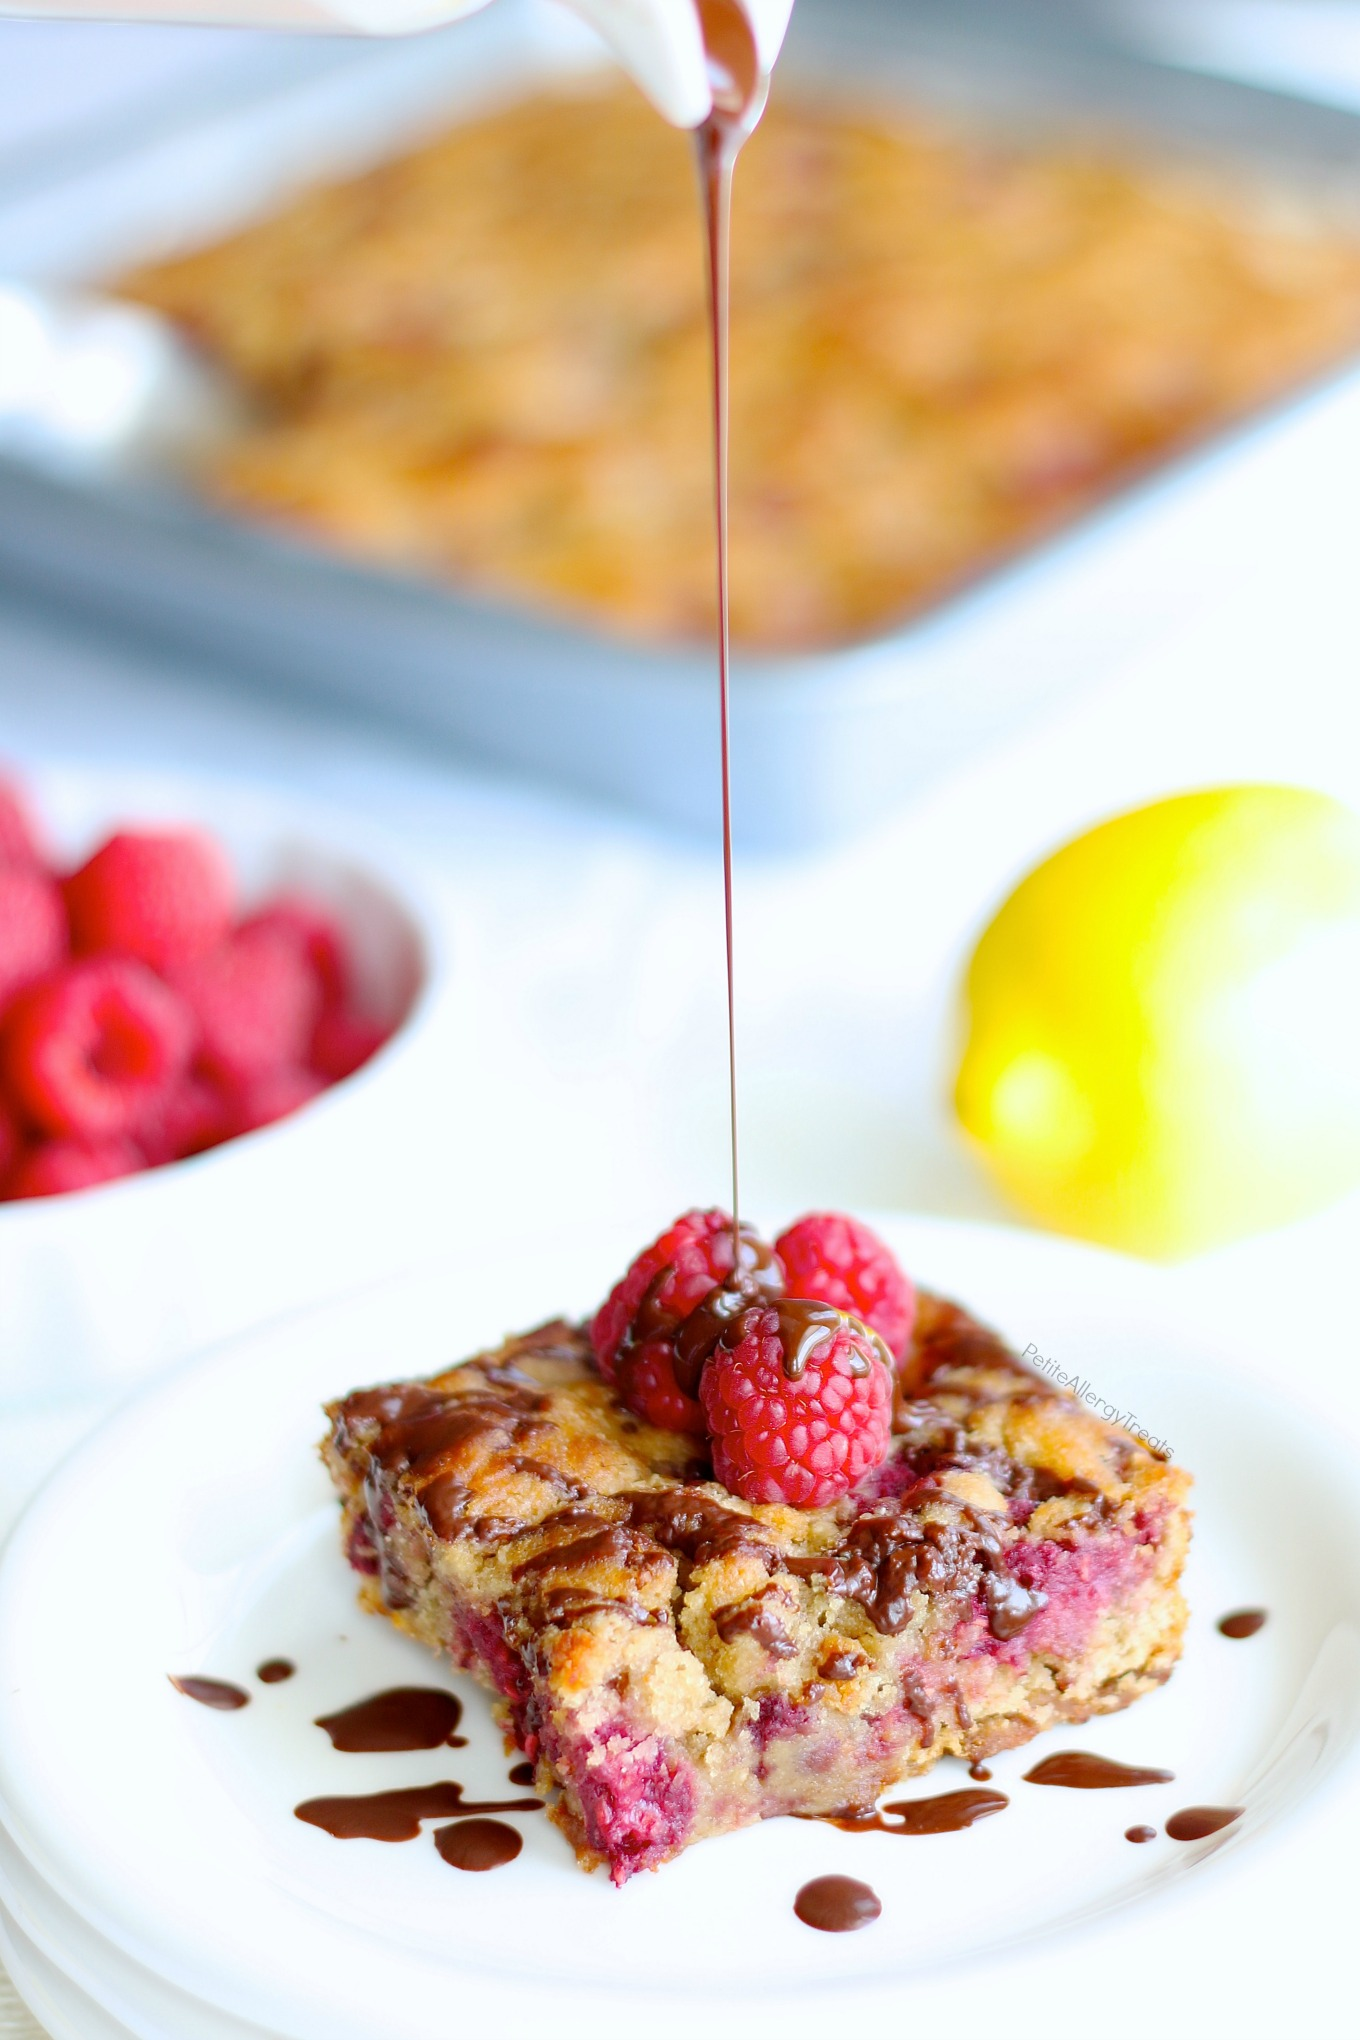 Gluten Free Raspberry Breakfast Cake (dairy free vegan) Recipe- Healthier no bowl required dump cake containing real fruit, protein and food allergy friendly.